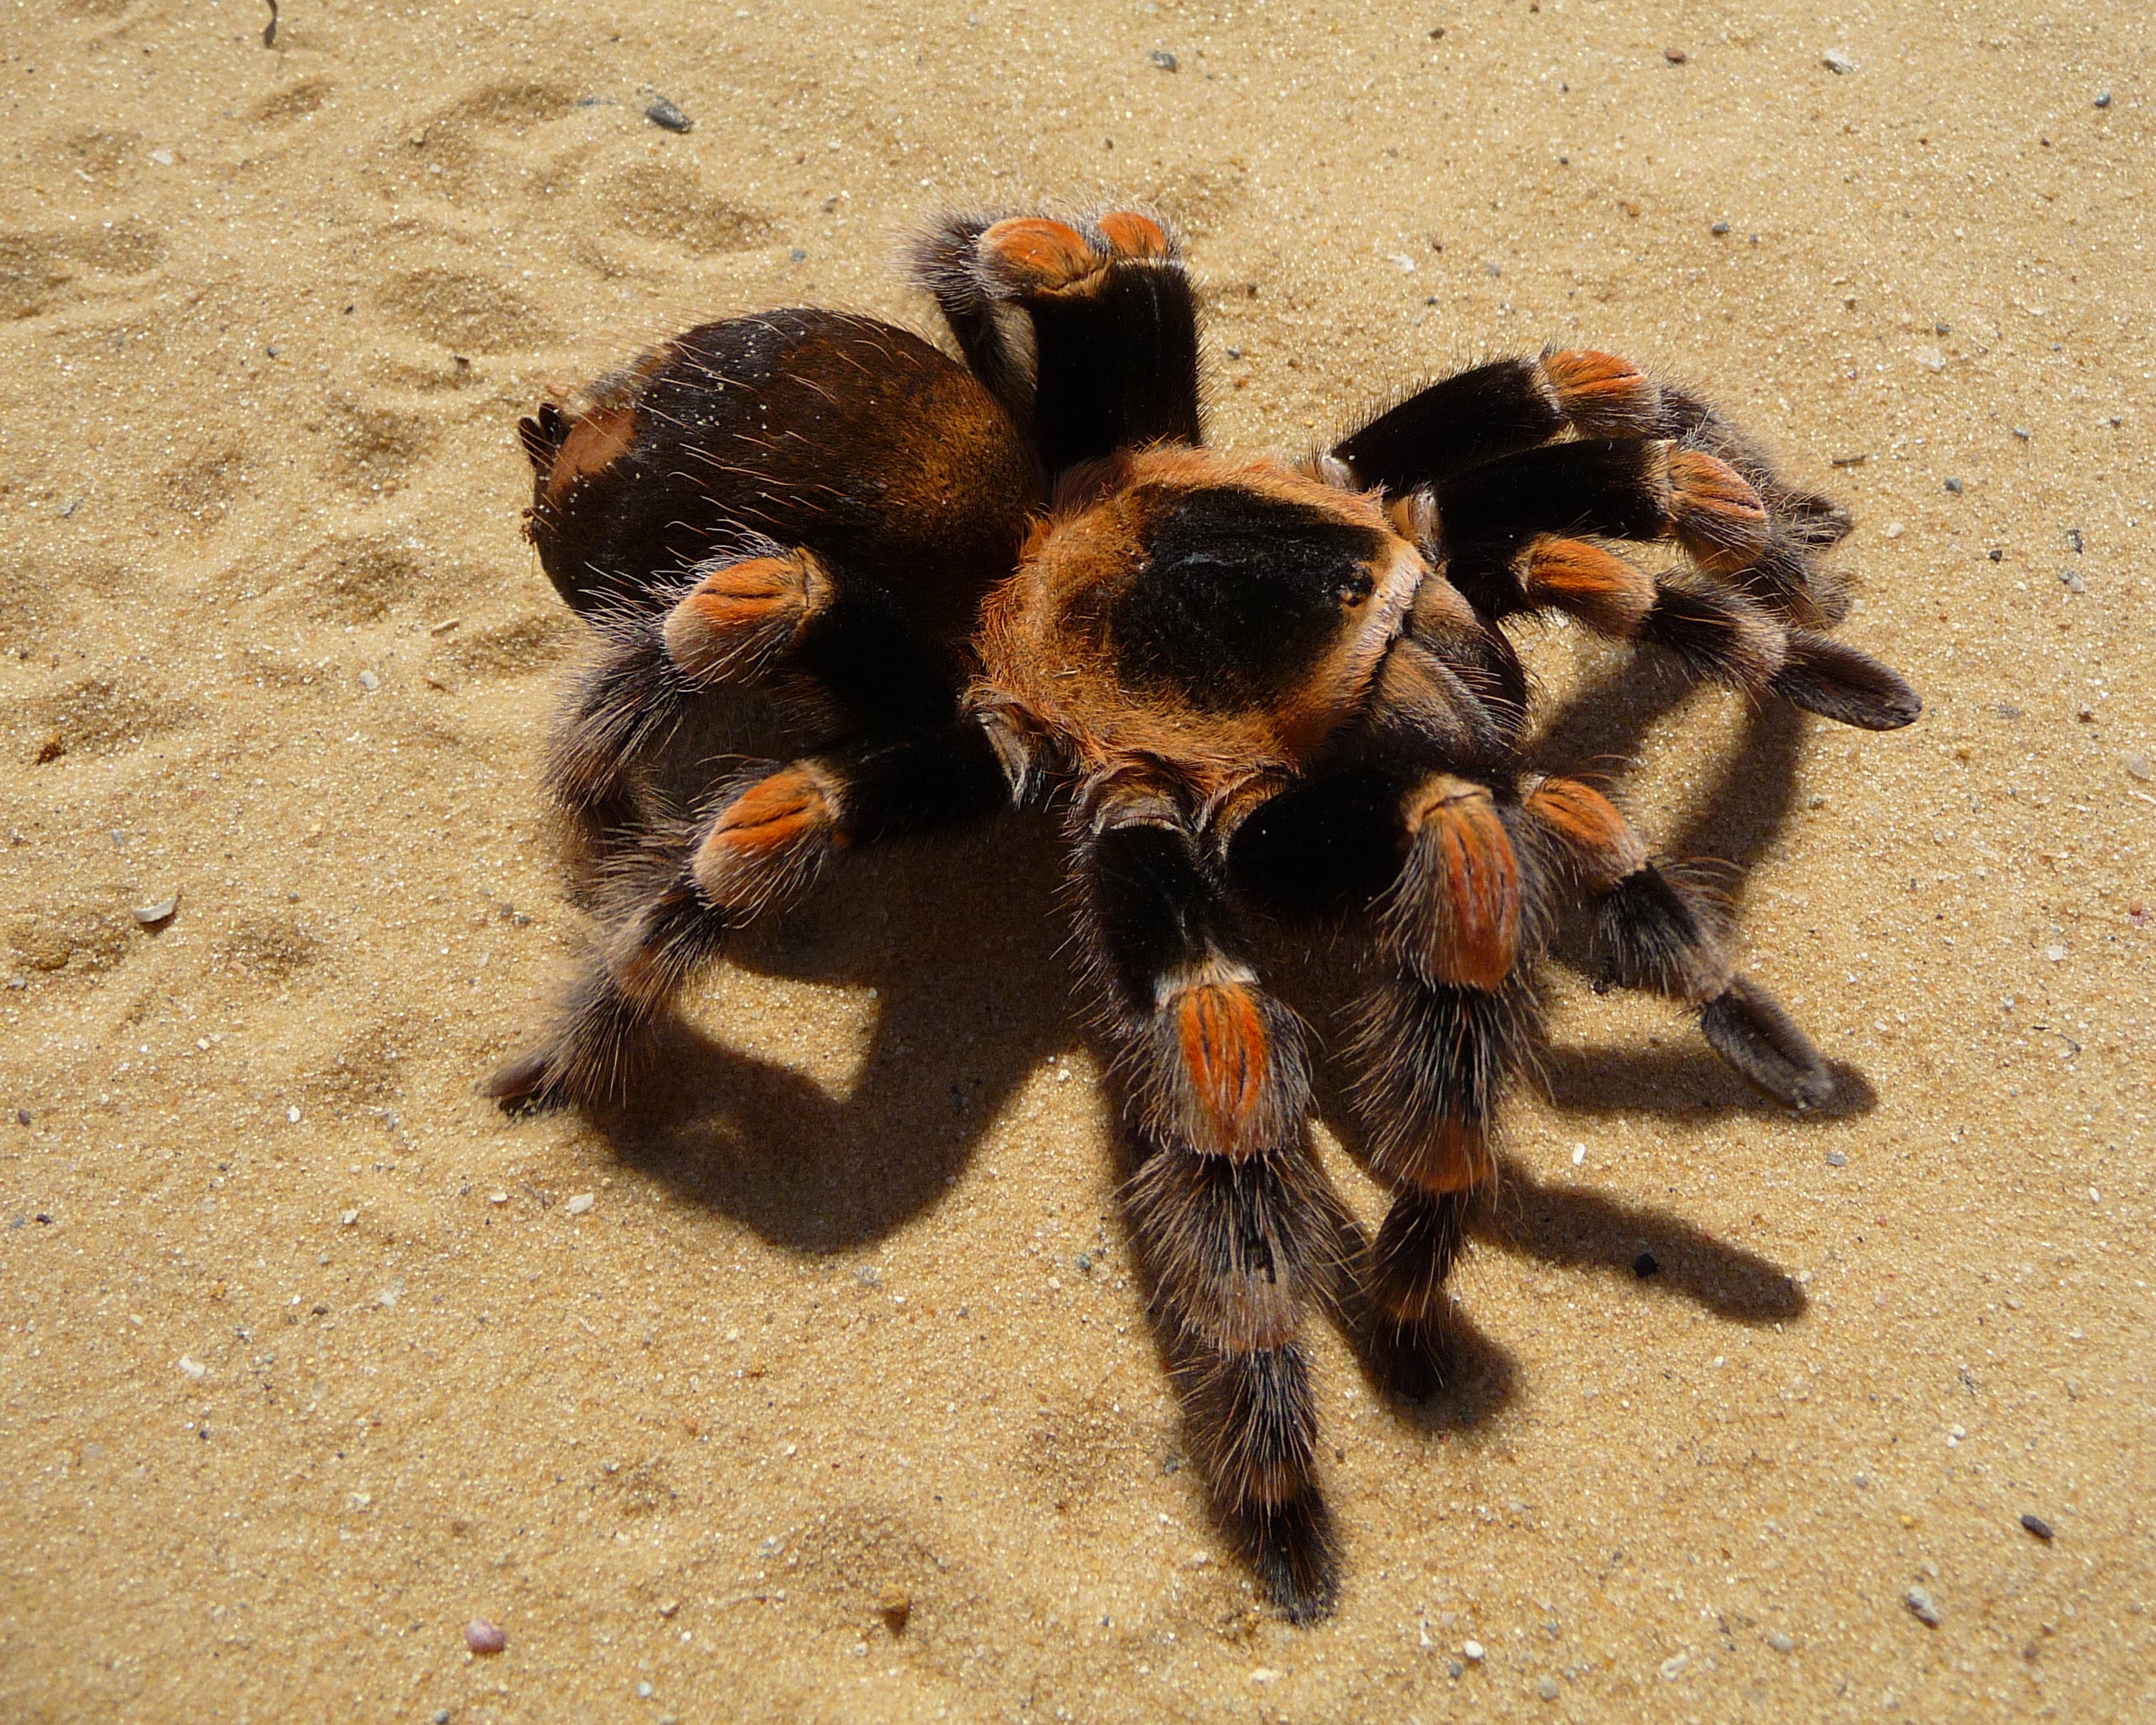 chypelma hamorii - Wikipedia on map where do tarantula, how long do tarantulas live, map of where camels are from, where do tarantulas live, map where do lizards live on a glass, map of brown recluse spiders in the us, map of arkansas, were tarantula live, map where do praying mantis live, map of mississippi natural resources, maps of where the brown widows live, map of tarantulas in us, map of tarantula hawk wasp,